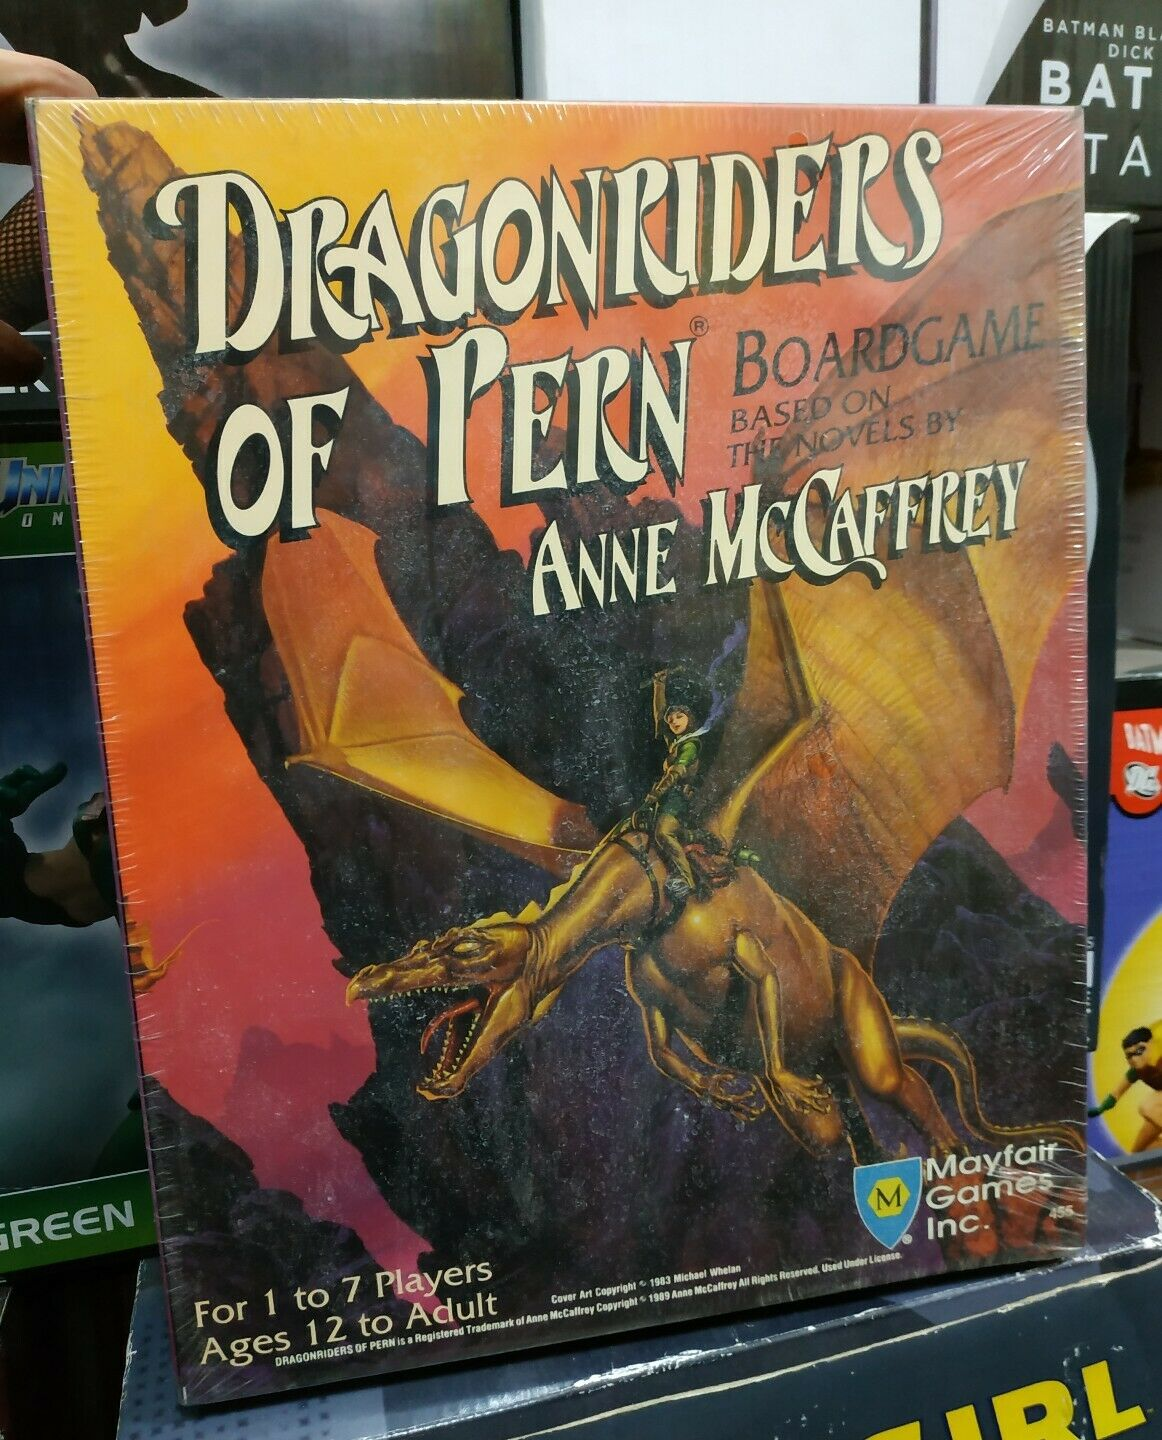 Dragonriders Of Pern Boardgame Mayfair Games Inc. Anne McCaffrey